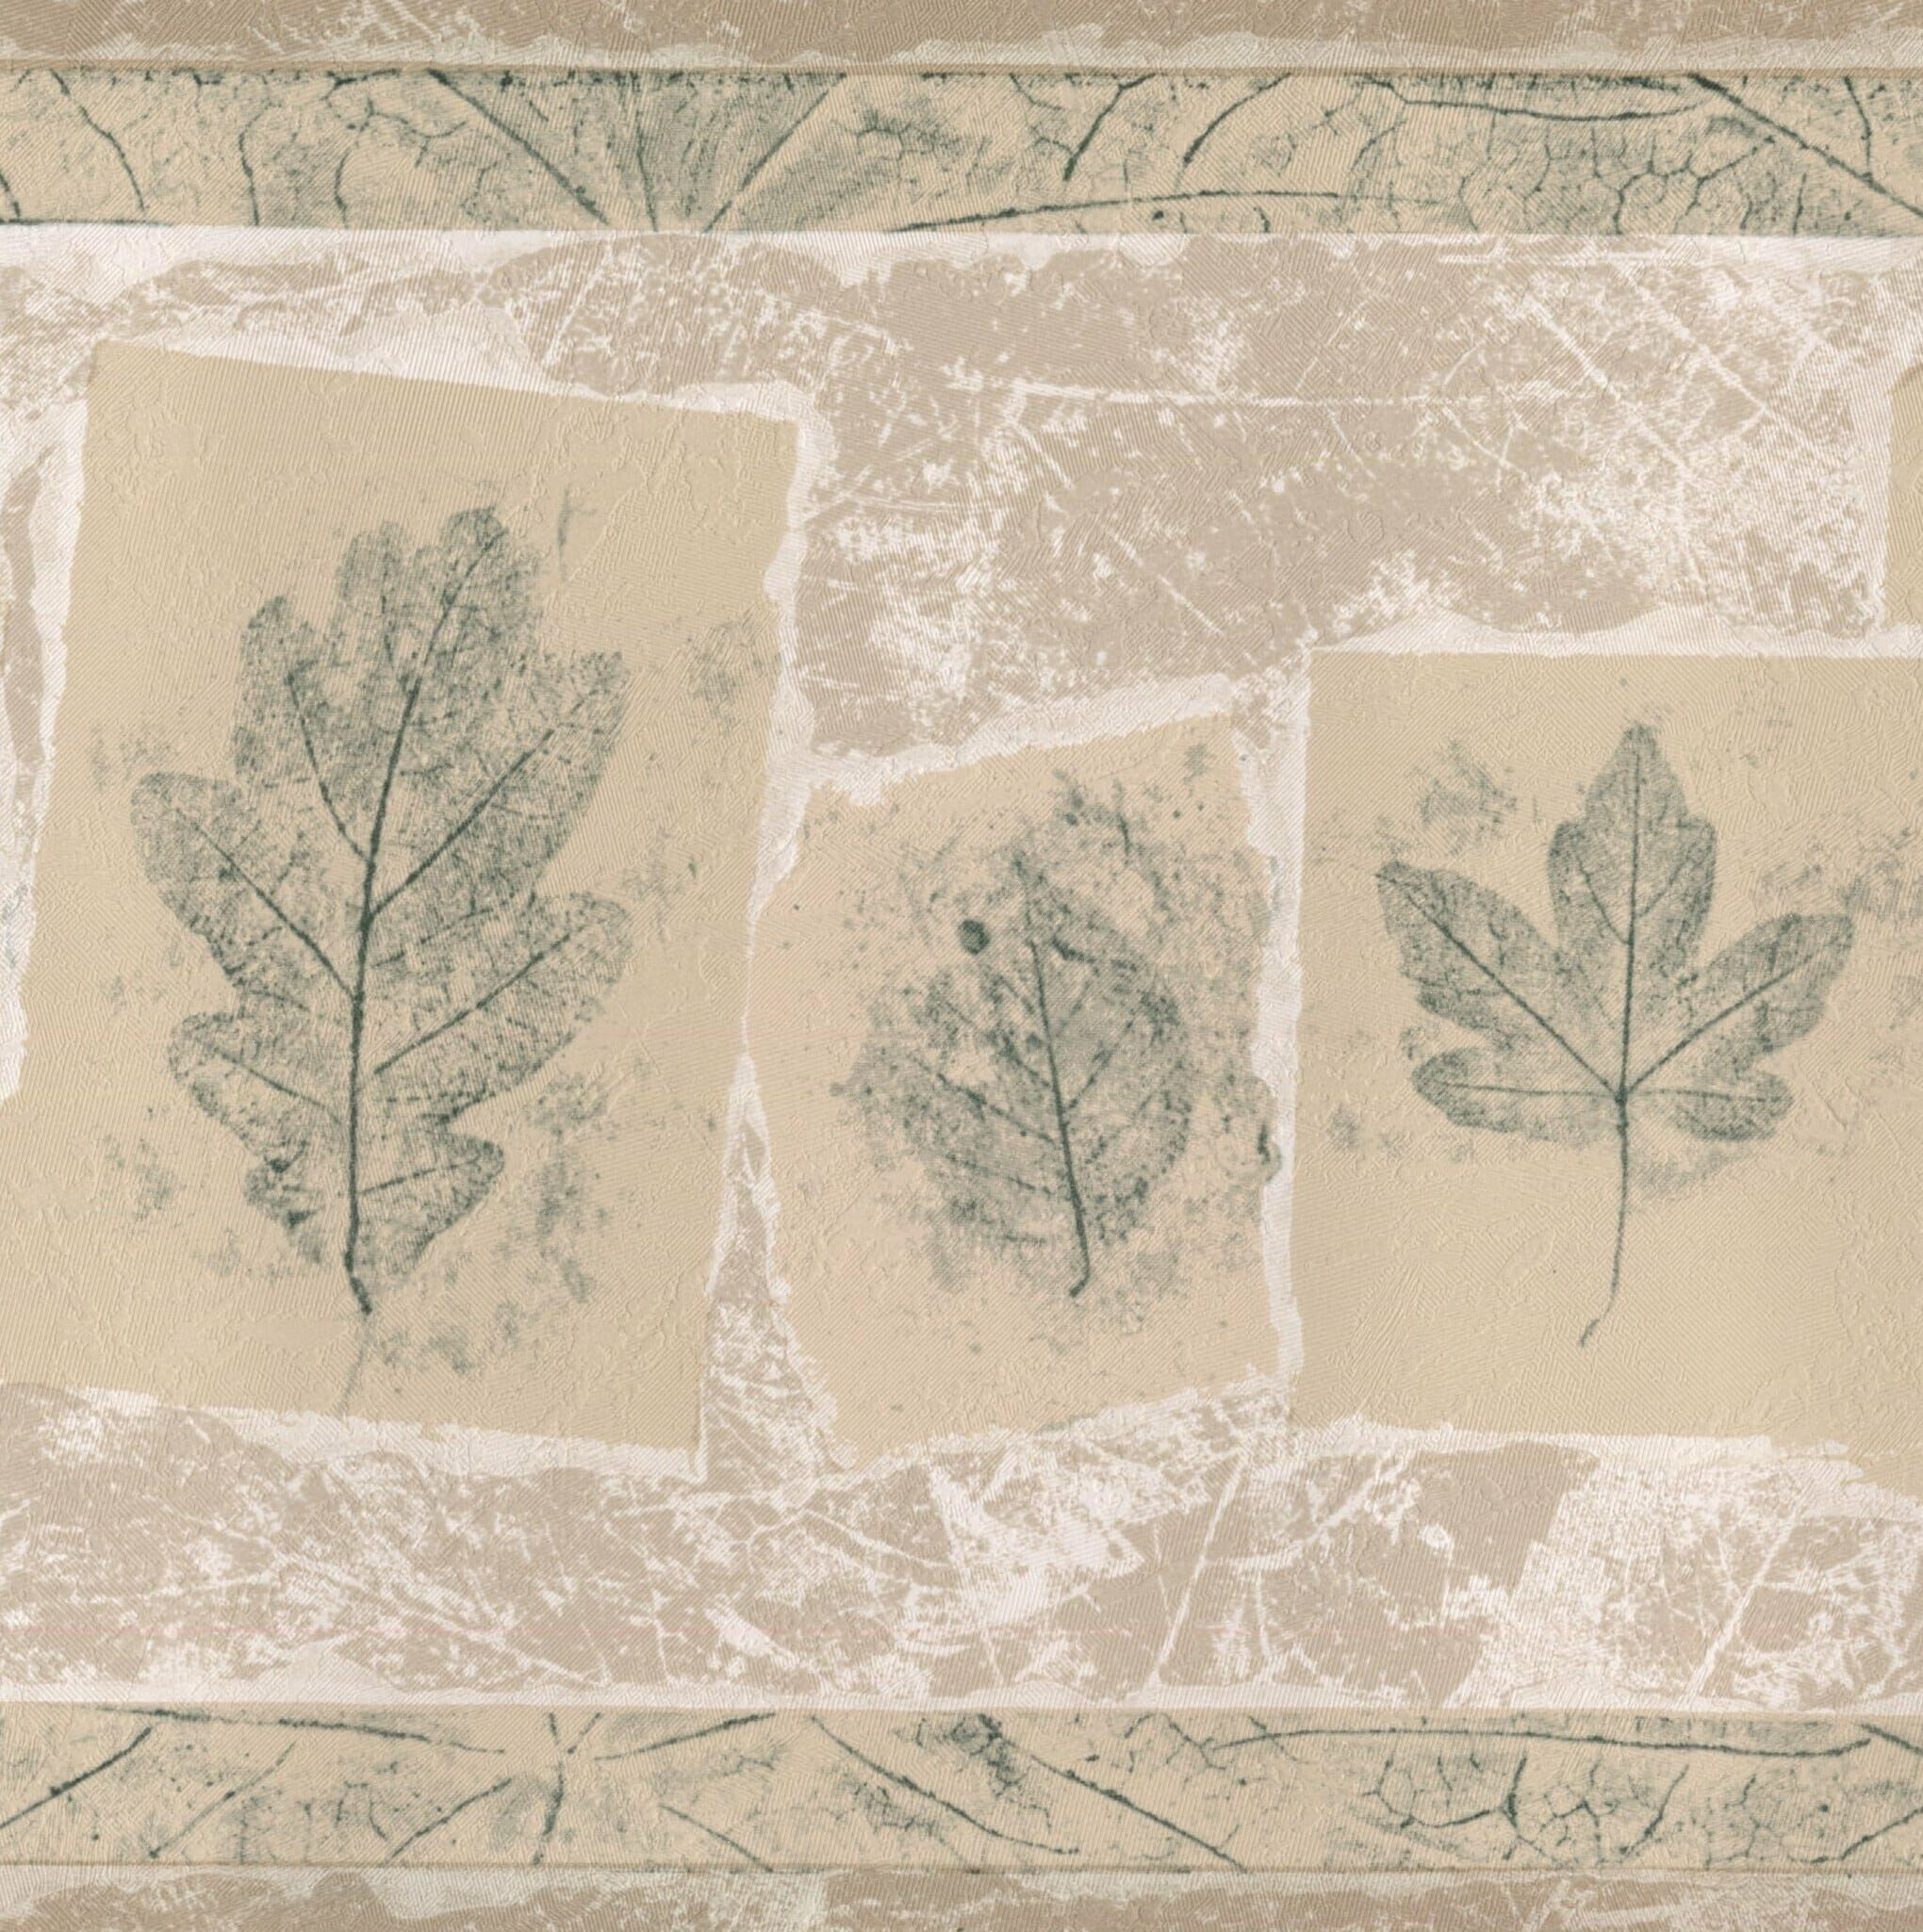 Charlton Home Holland Sketched Leaves On Cards Vintage Retro